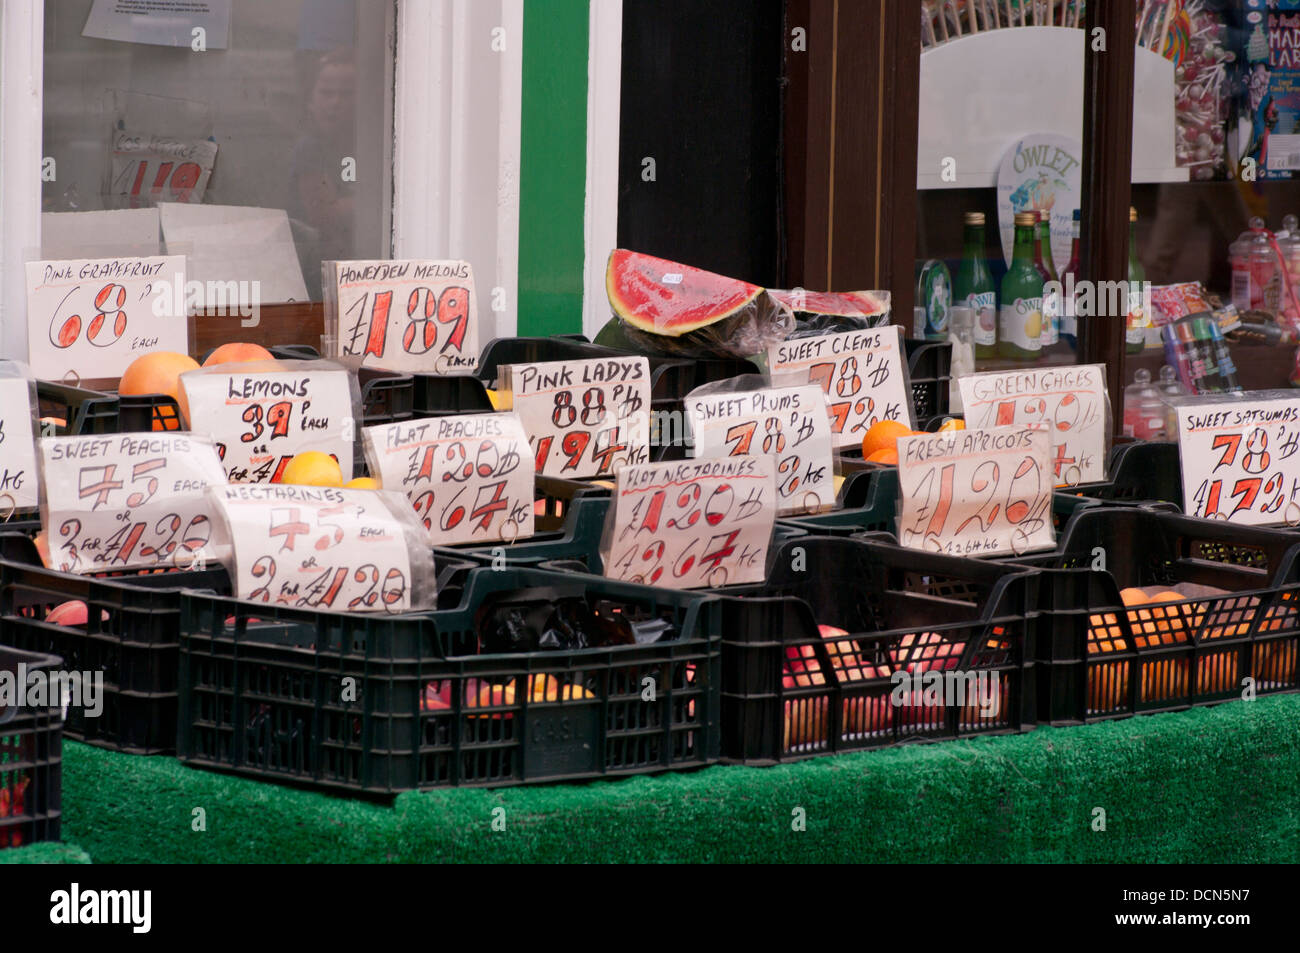 Fruit Display Outside a Greengrocers UK - Stock Image